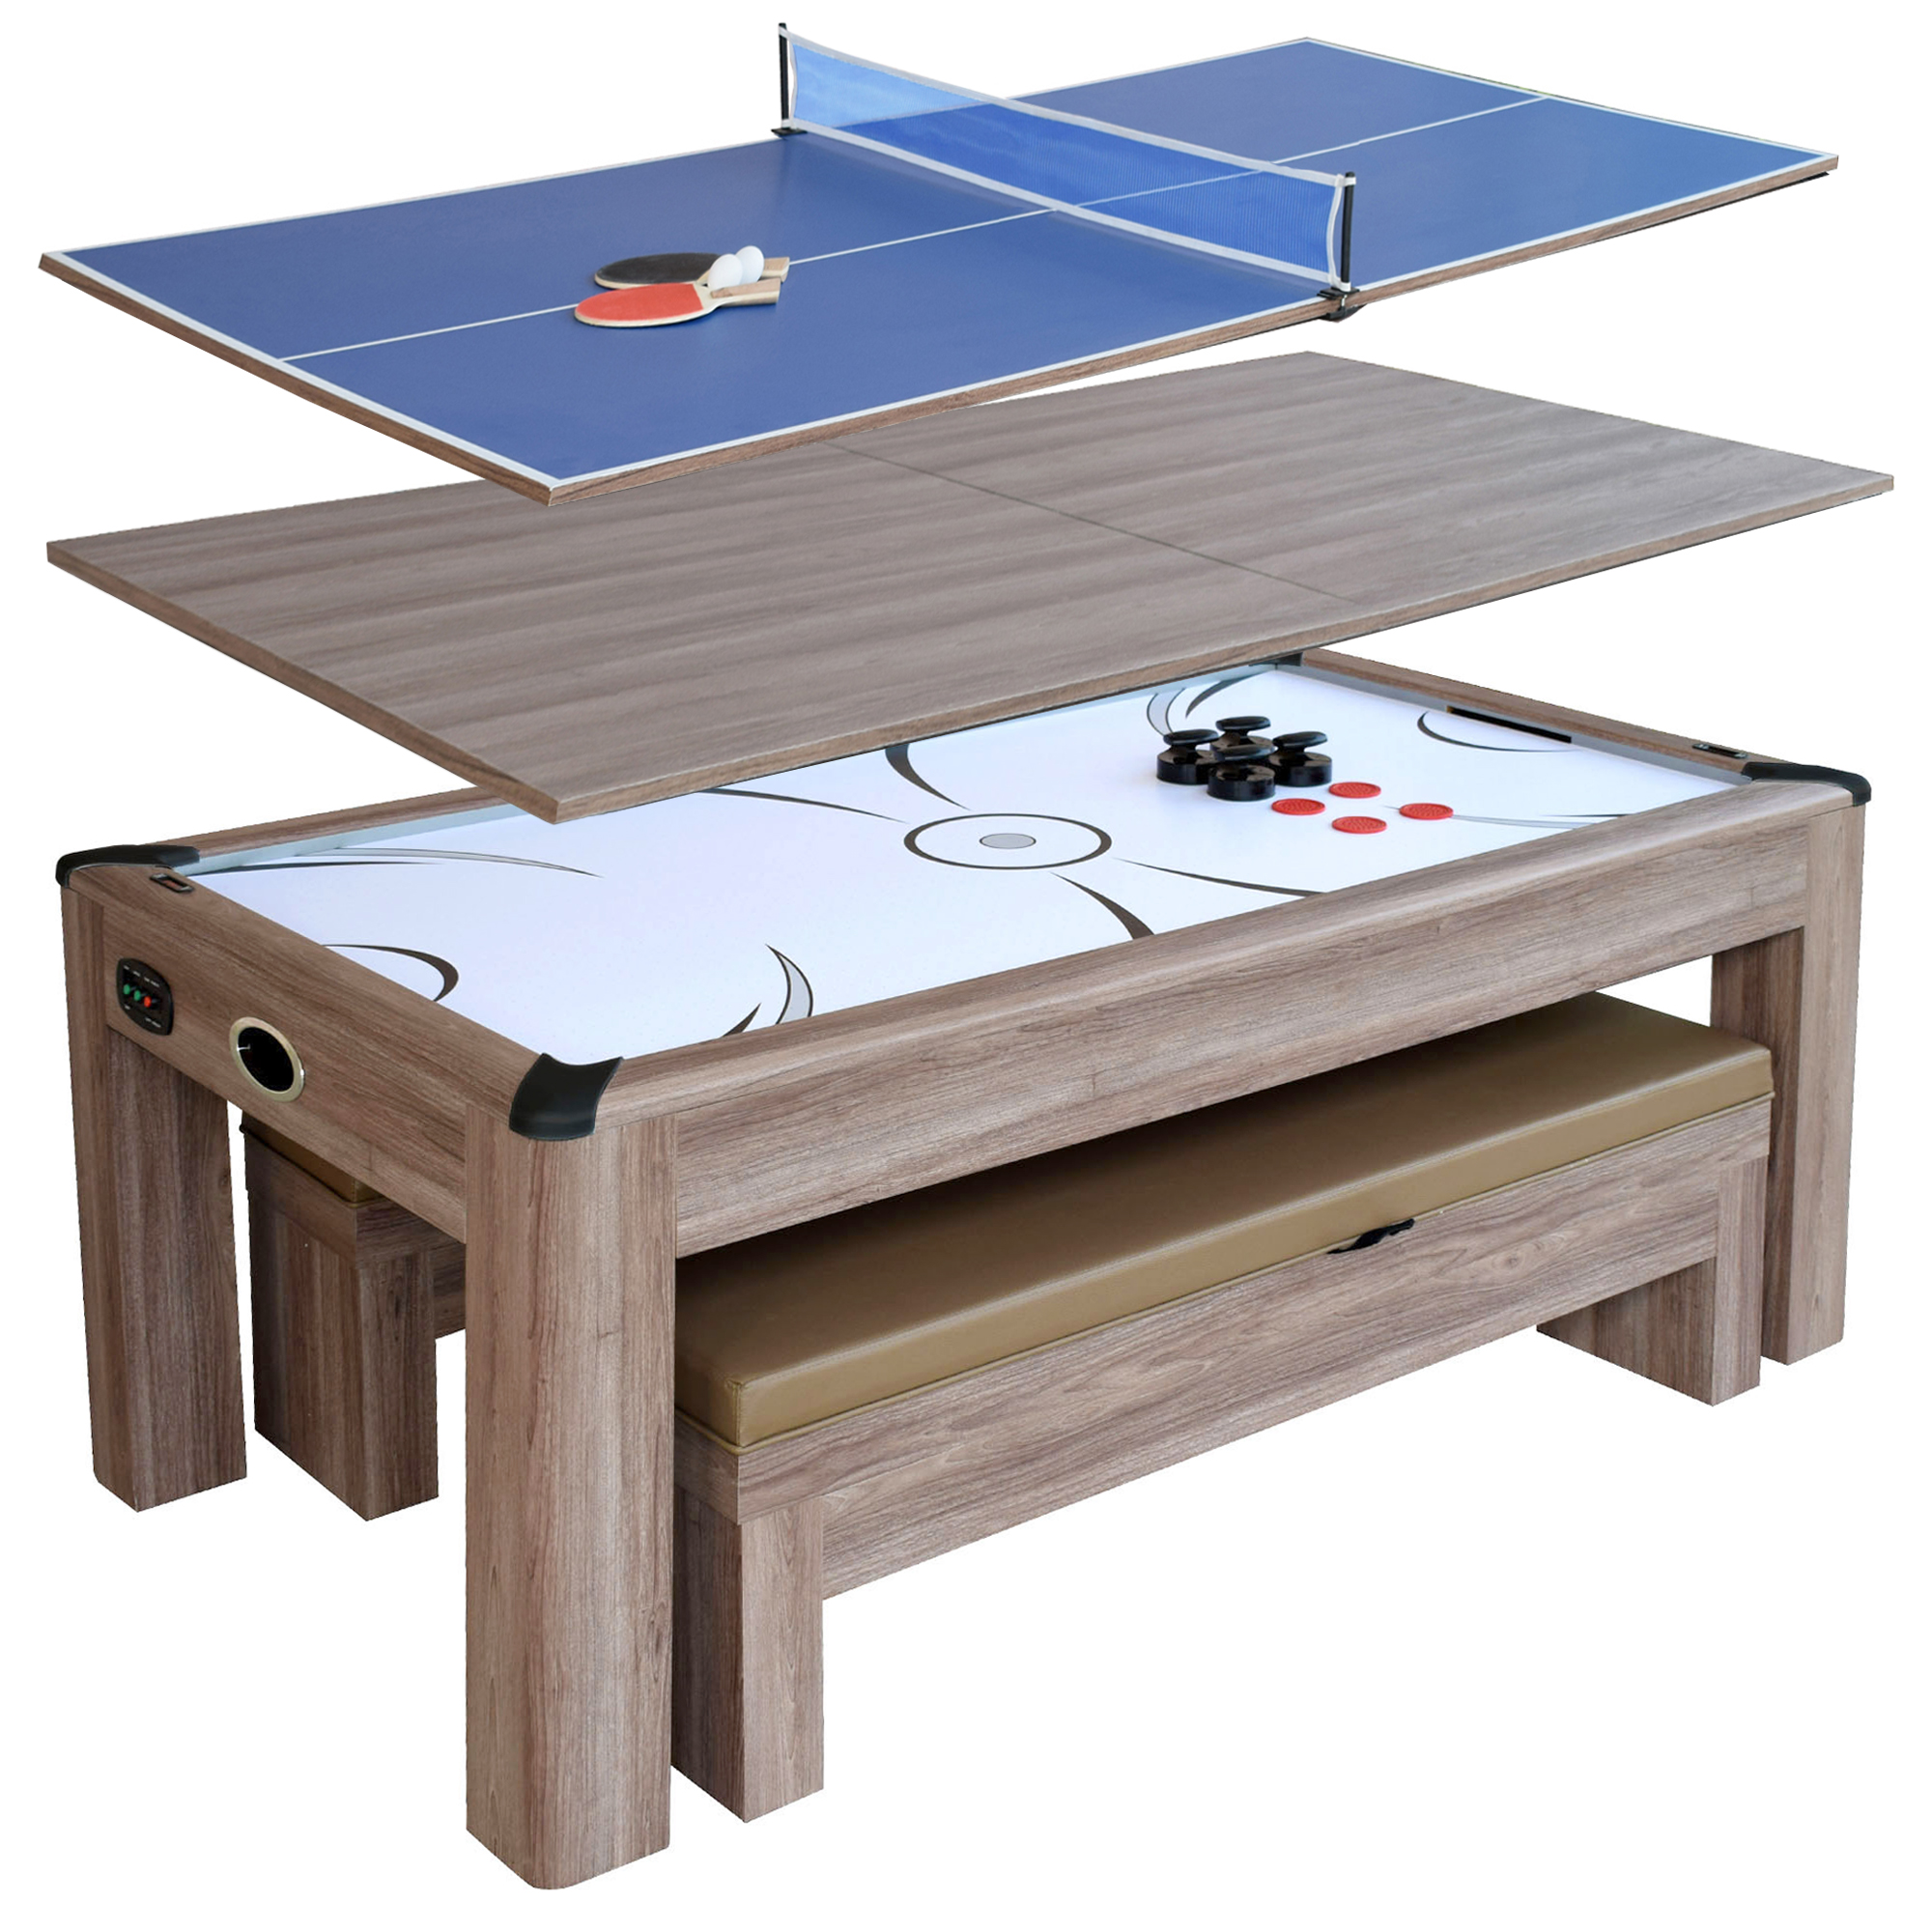 Hathawayu0026#153; Driftwood 7 Ft Air Hockey Table Combo Set W/Benches